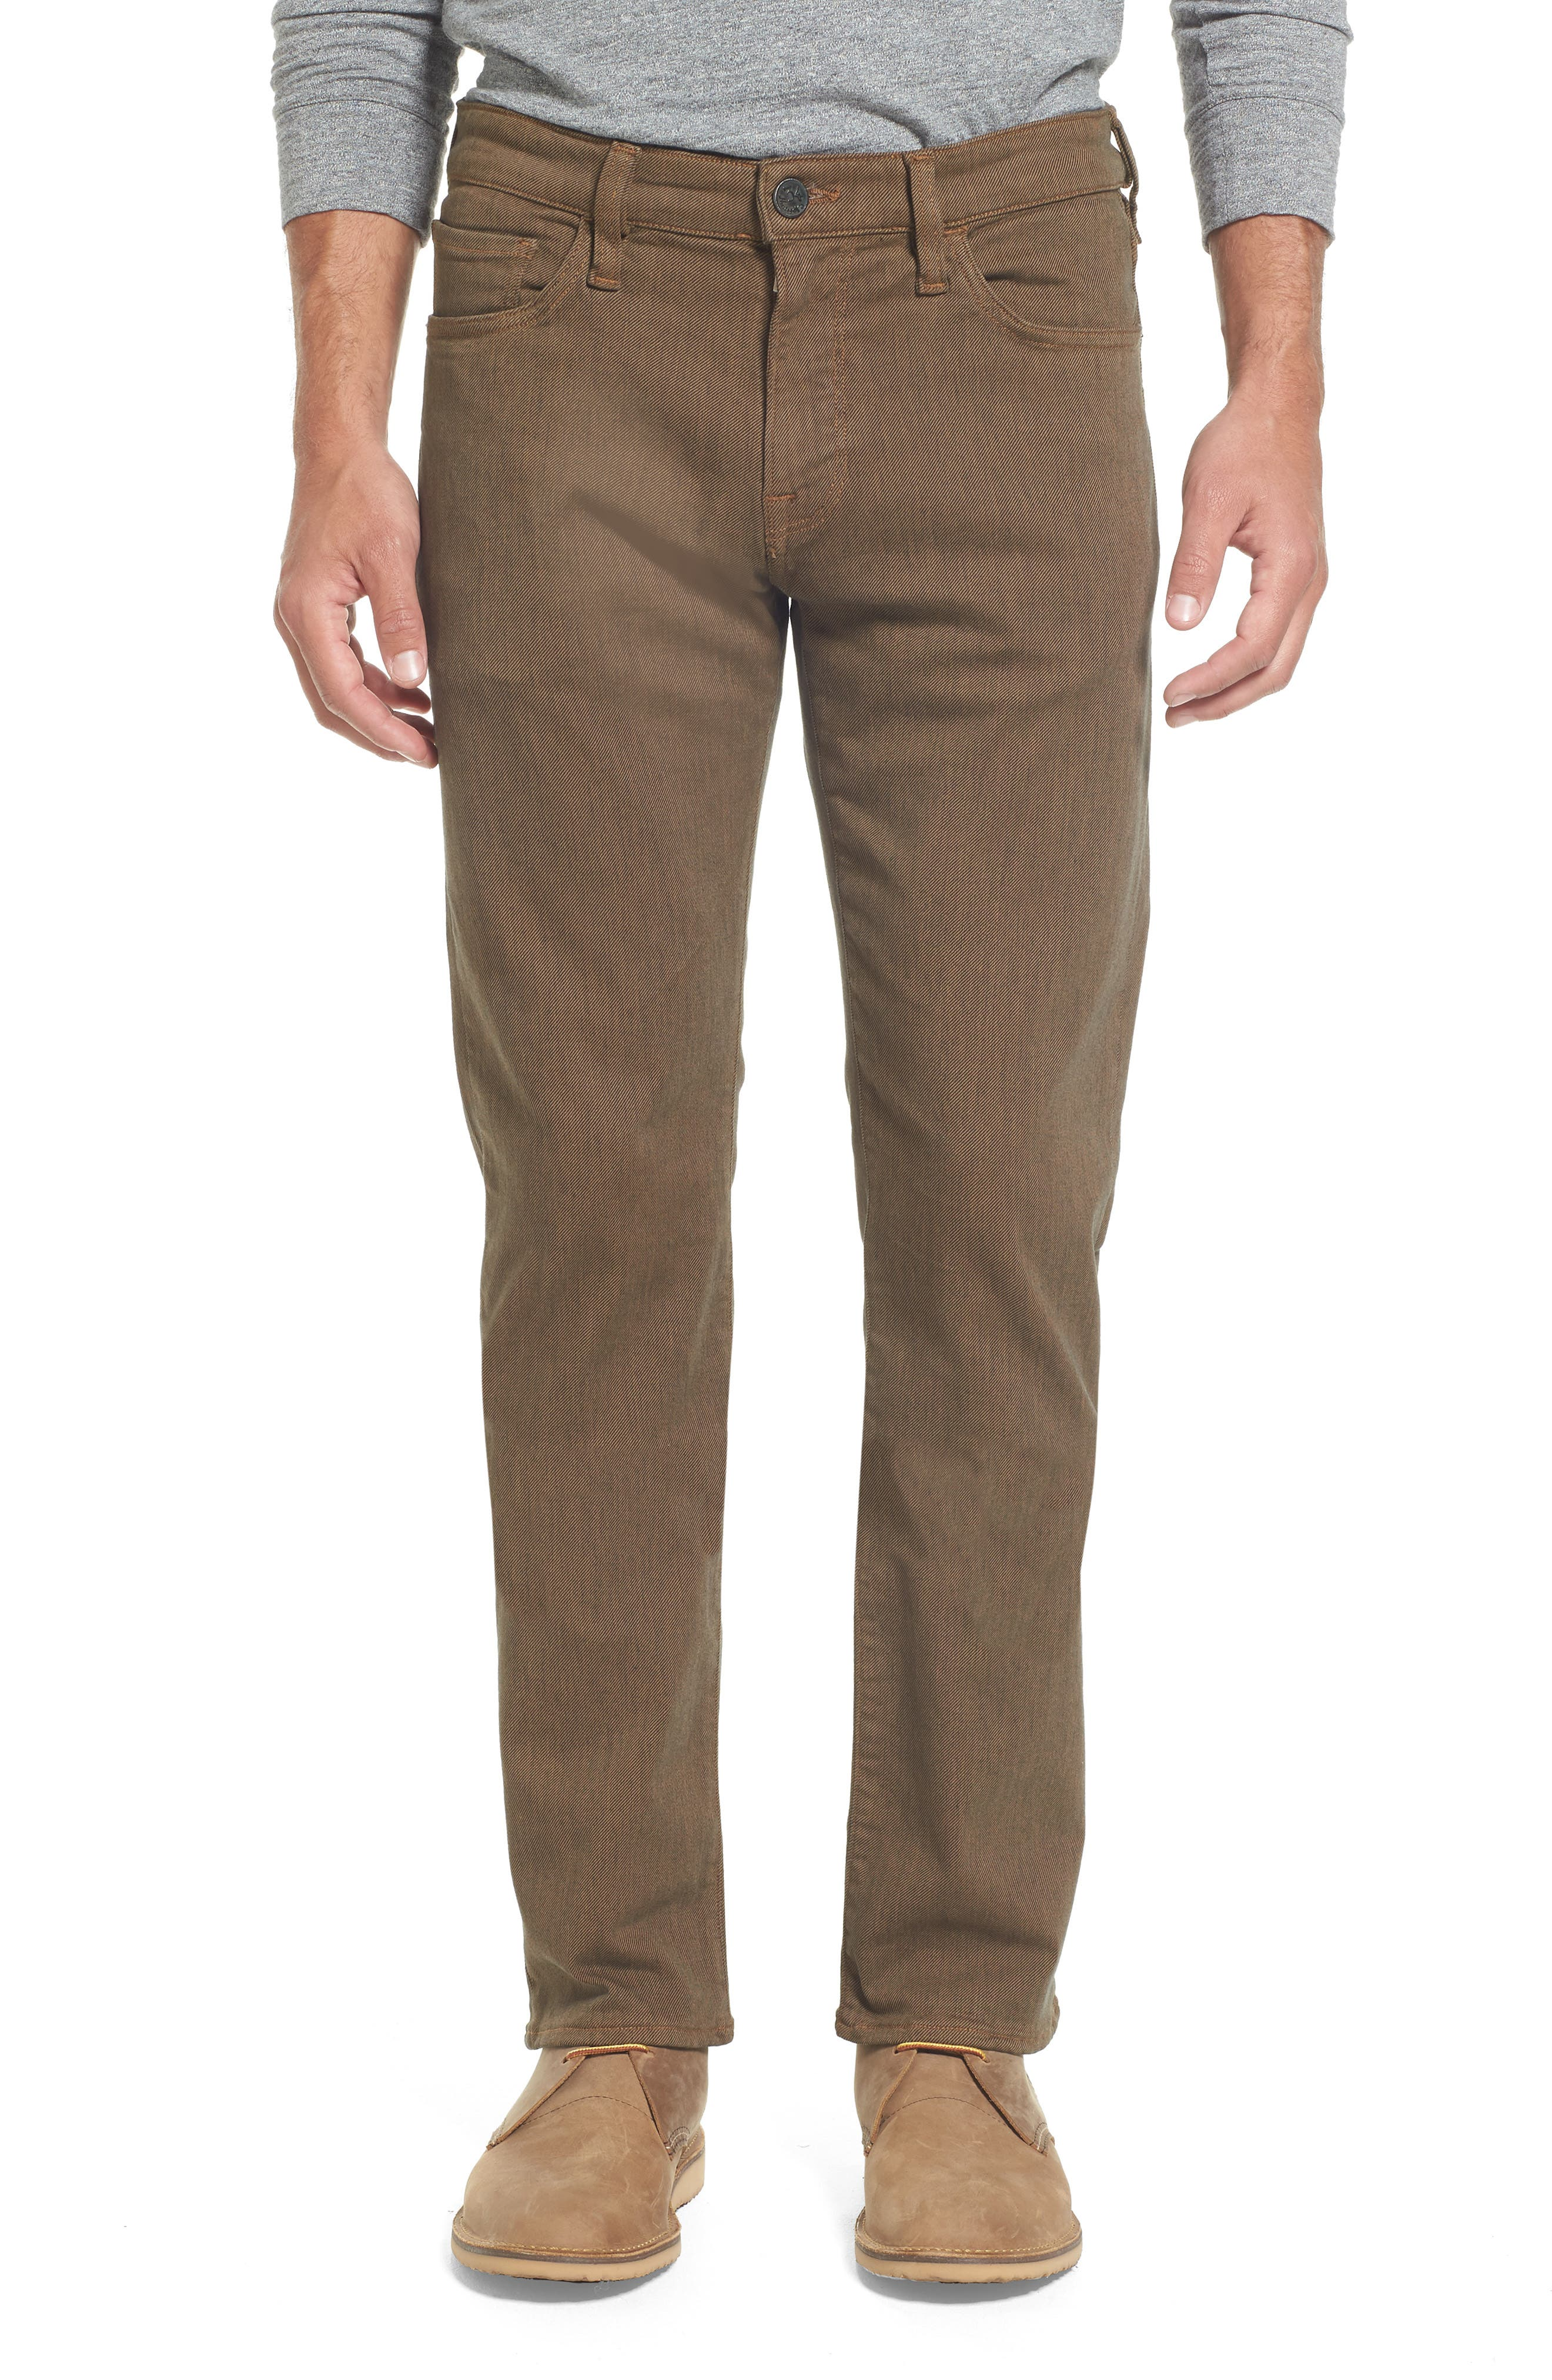 Heritage 34 Courage Straight Leg Jeans,                         Main,                         color, Rust Diagonal